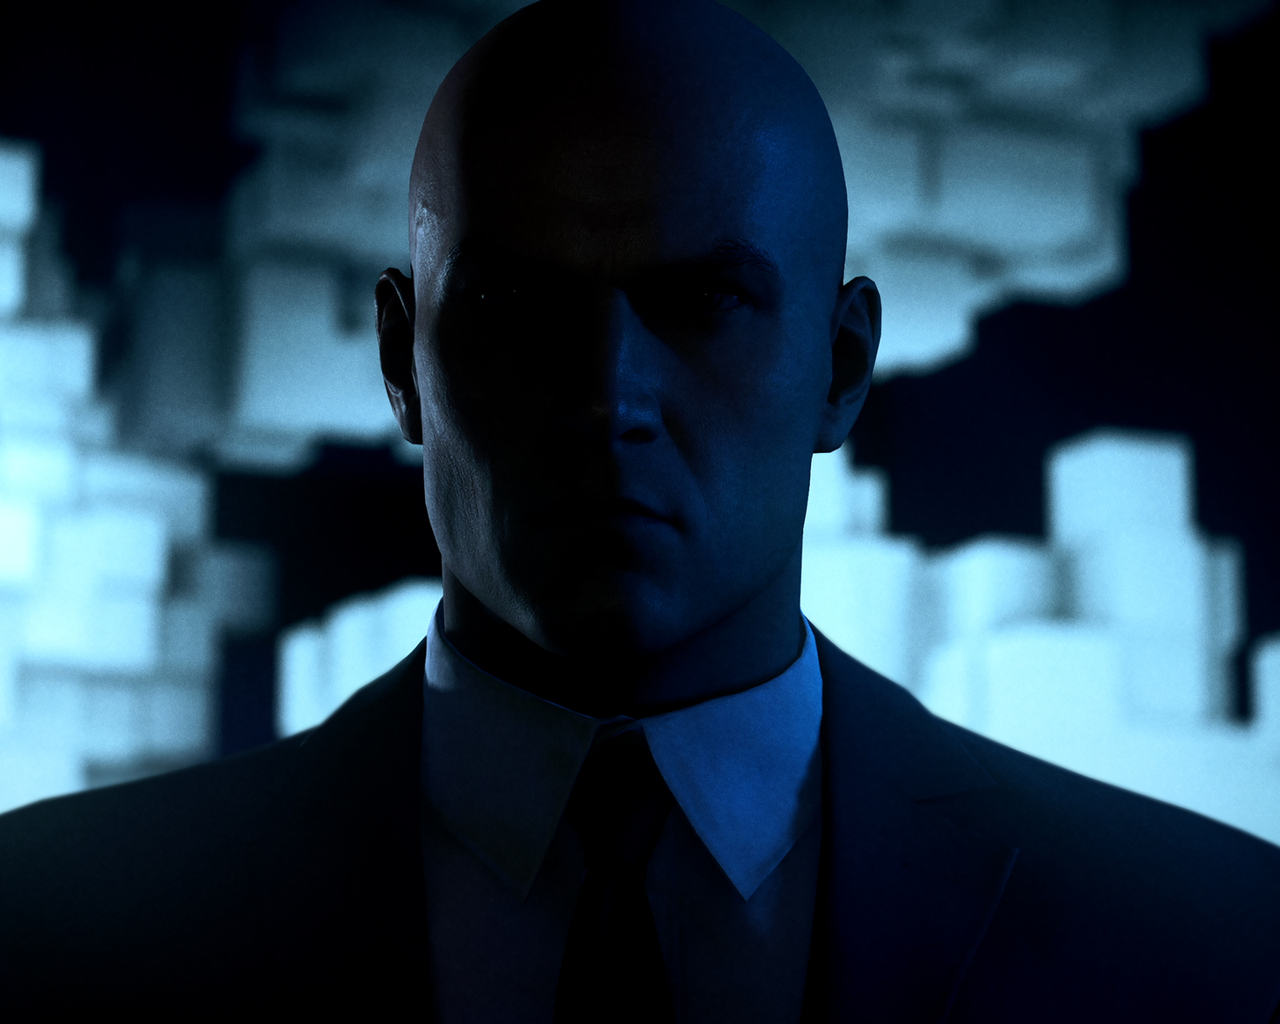 1280x1024 Hitman 3 1280x1024 Resolution HD 4k Wallpapers, Images, Backgrounds, Photos and Pictures